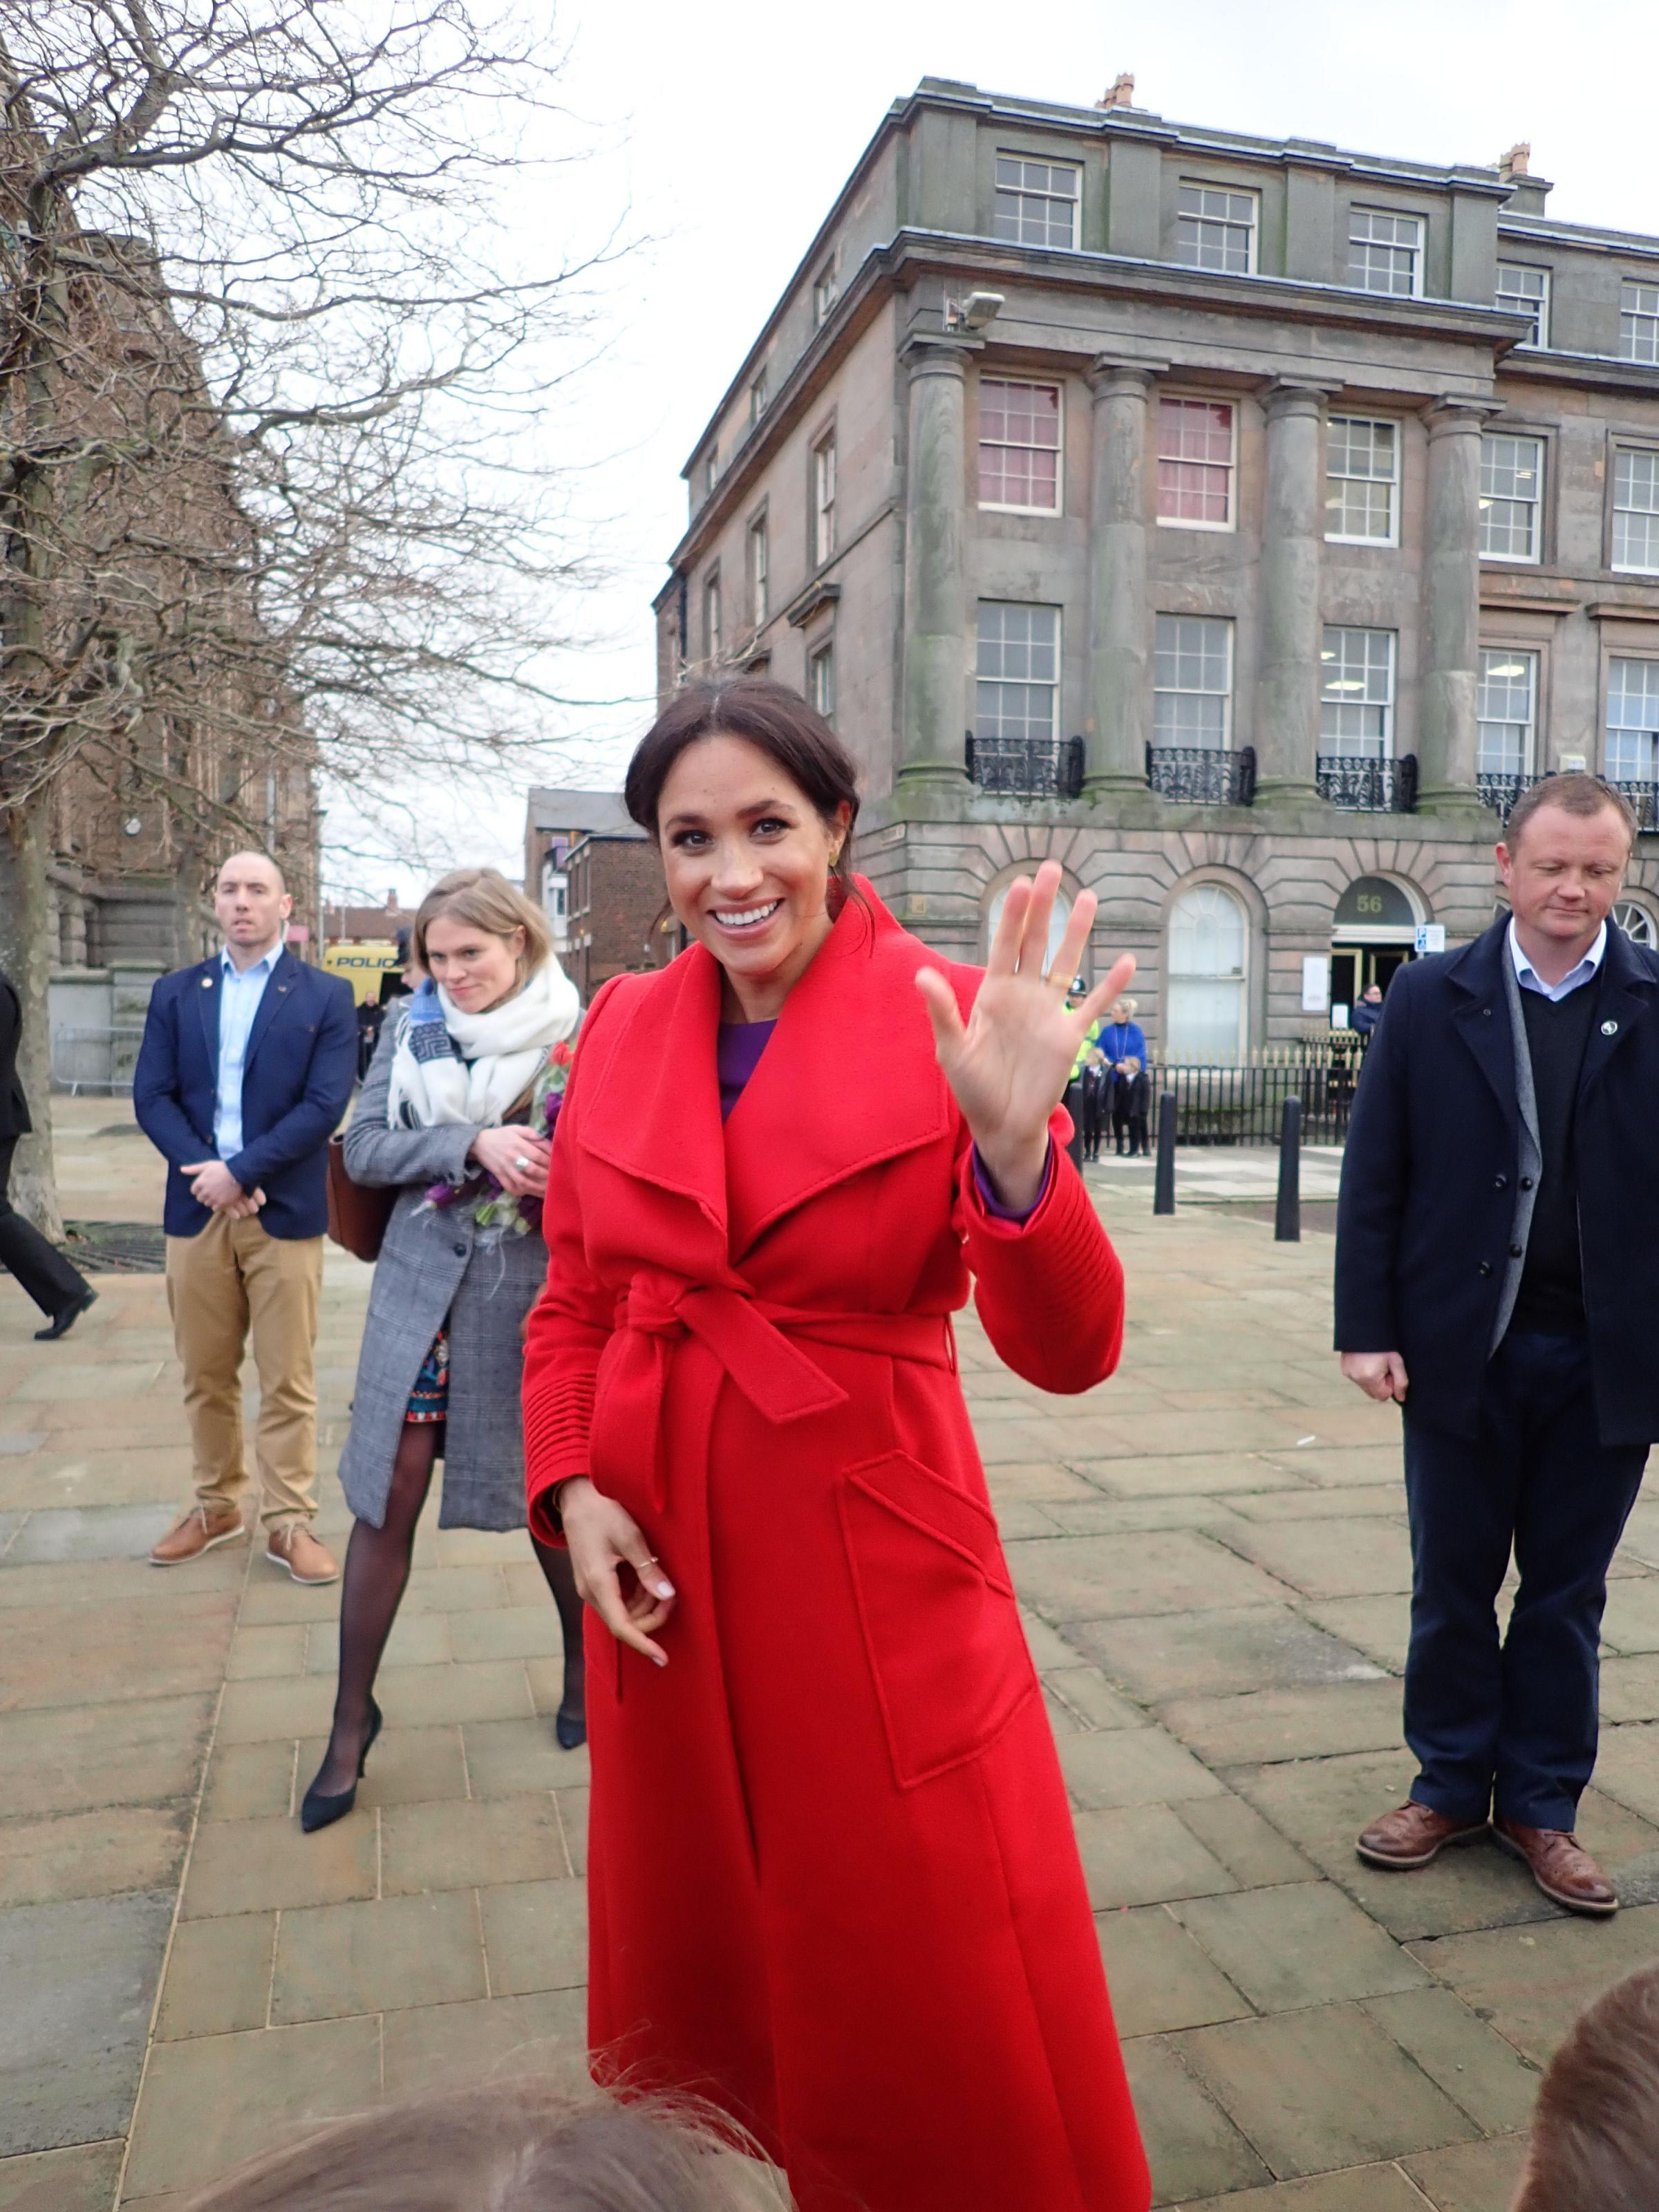 What a difference a year makes: When Harry and Meghan visited Birkenhead